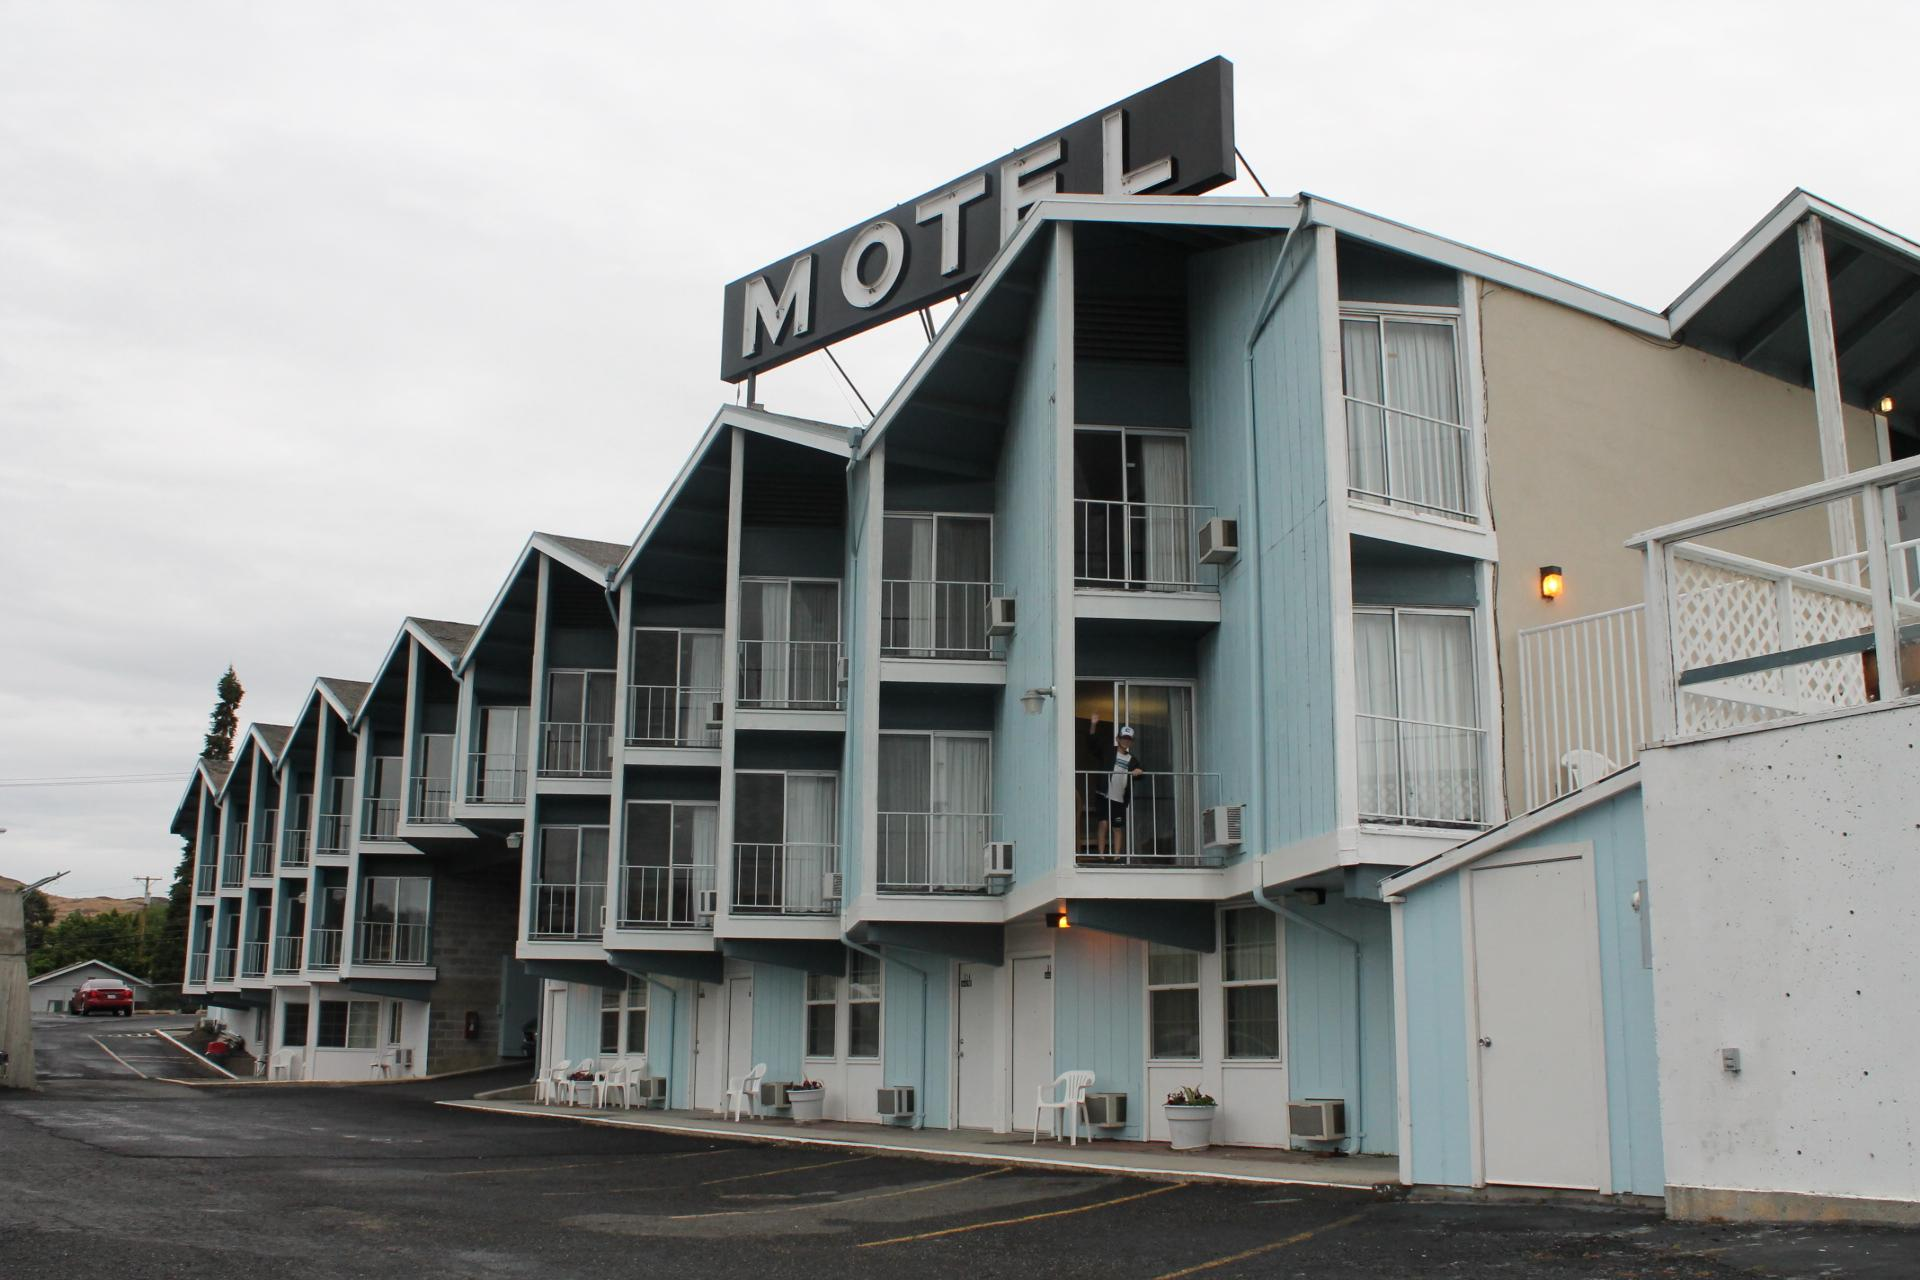 Coulee House Motel